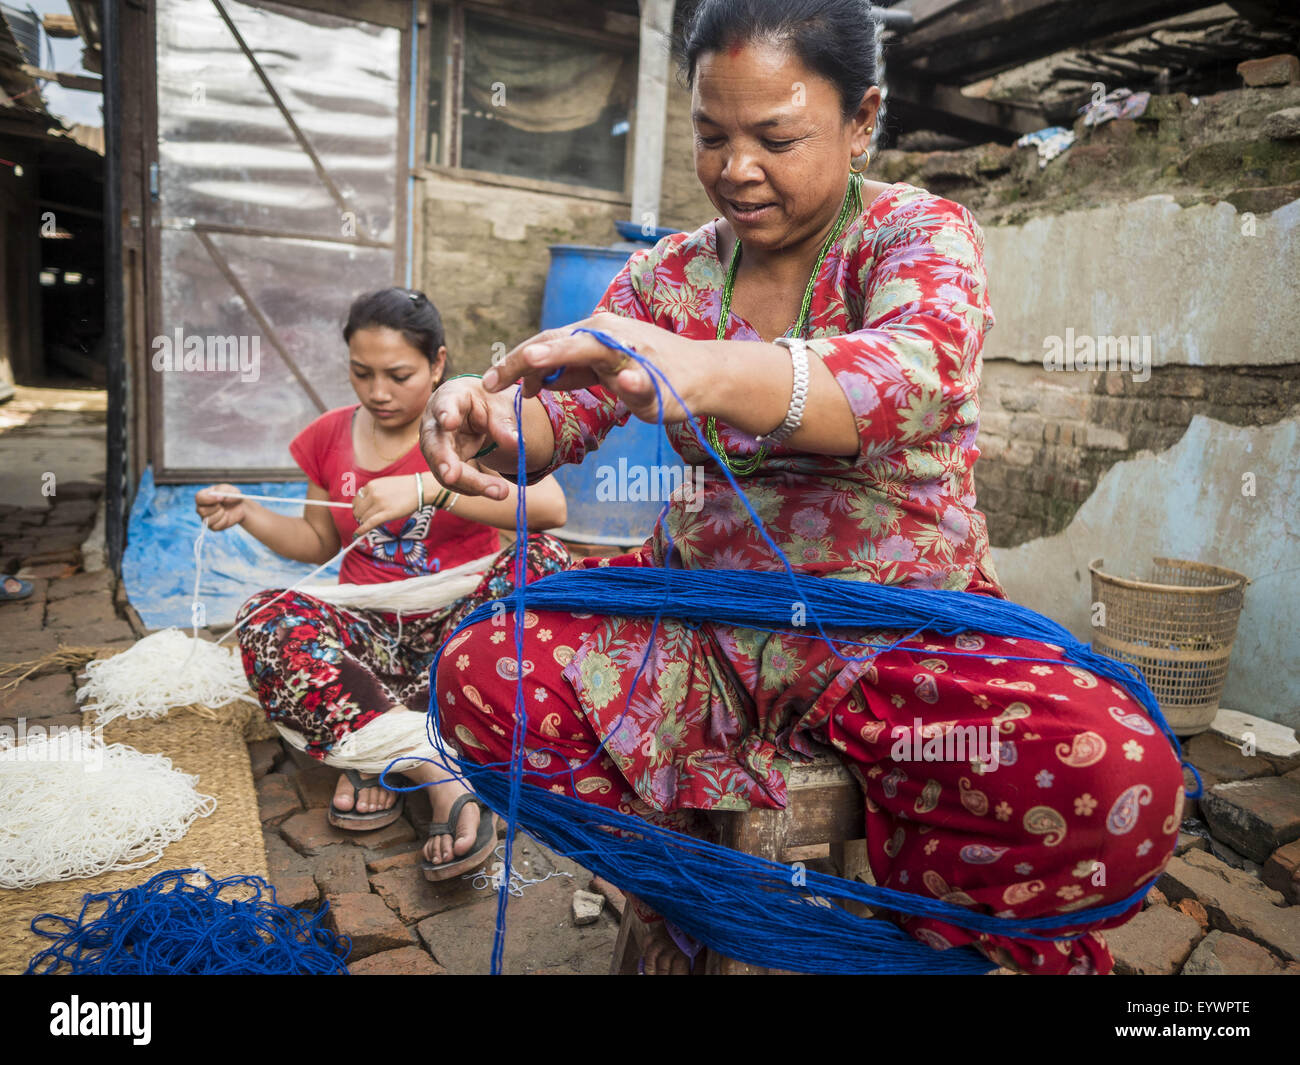 Bhaktapur, Central Region, Nepal. 2nd Aug, 2015. Women make tourist curios in front of their temporary shelters - Stock Image